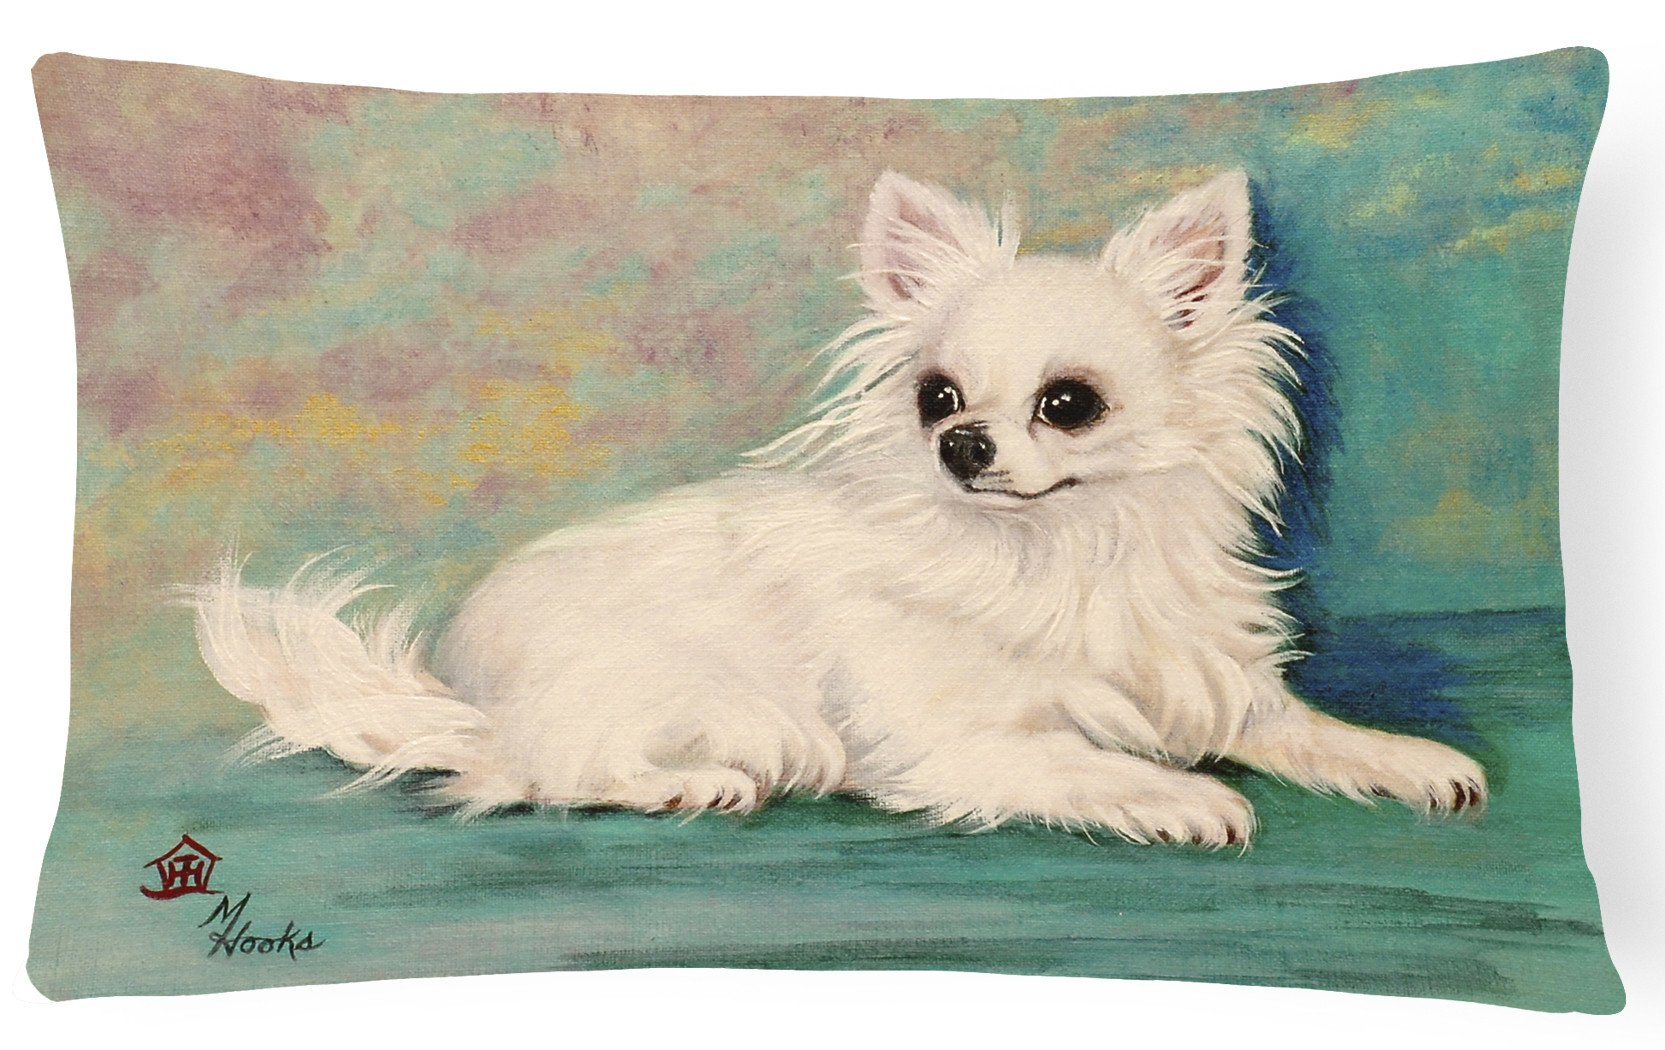 Chihuahua Queen Mother Fabric Decorative Pillow MH1057PW1216 by Caroline's Treasures